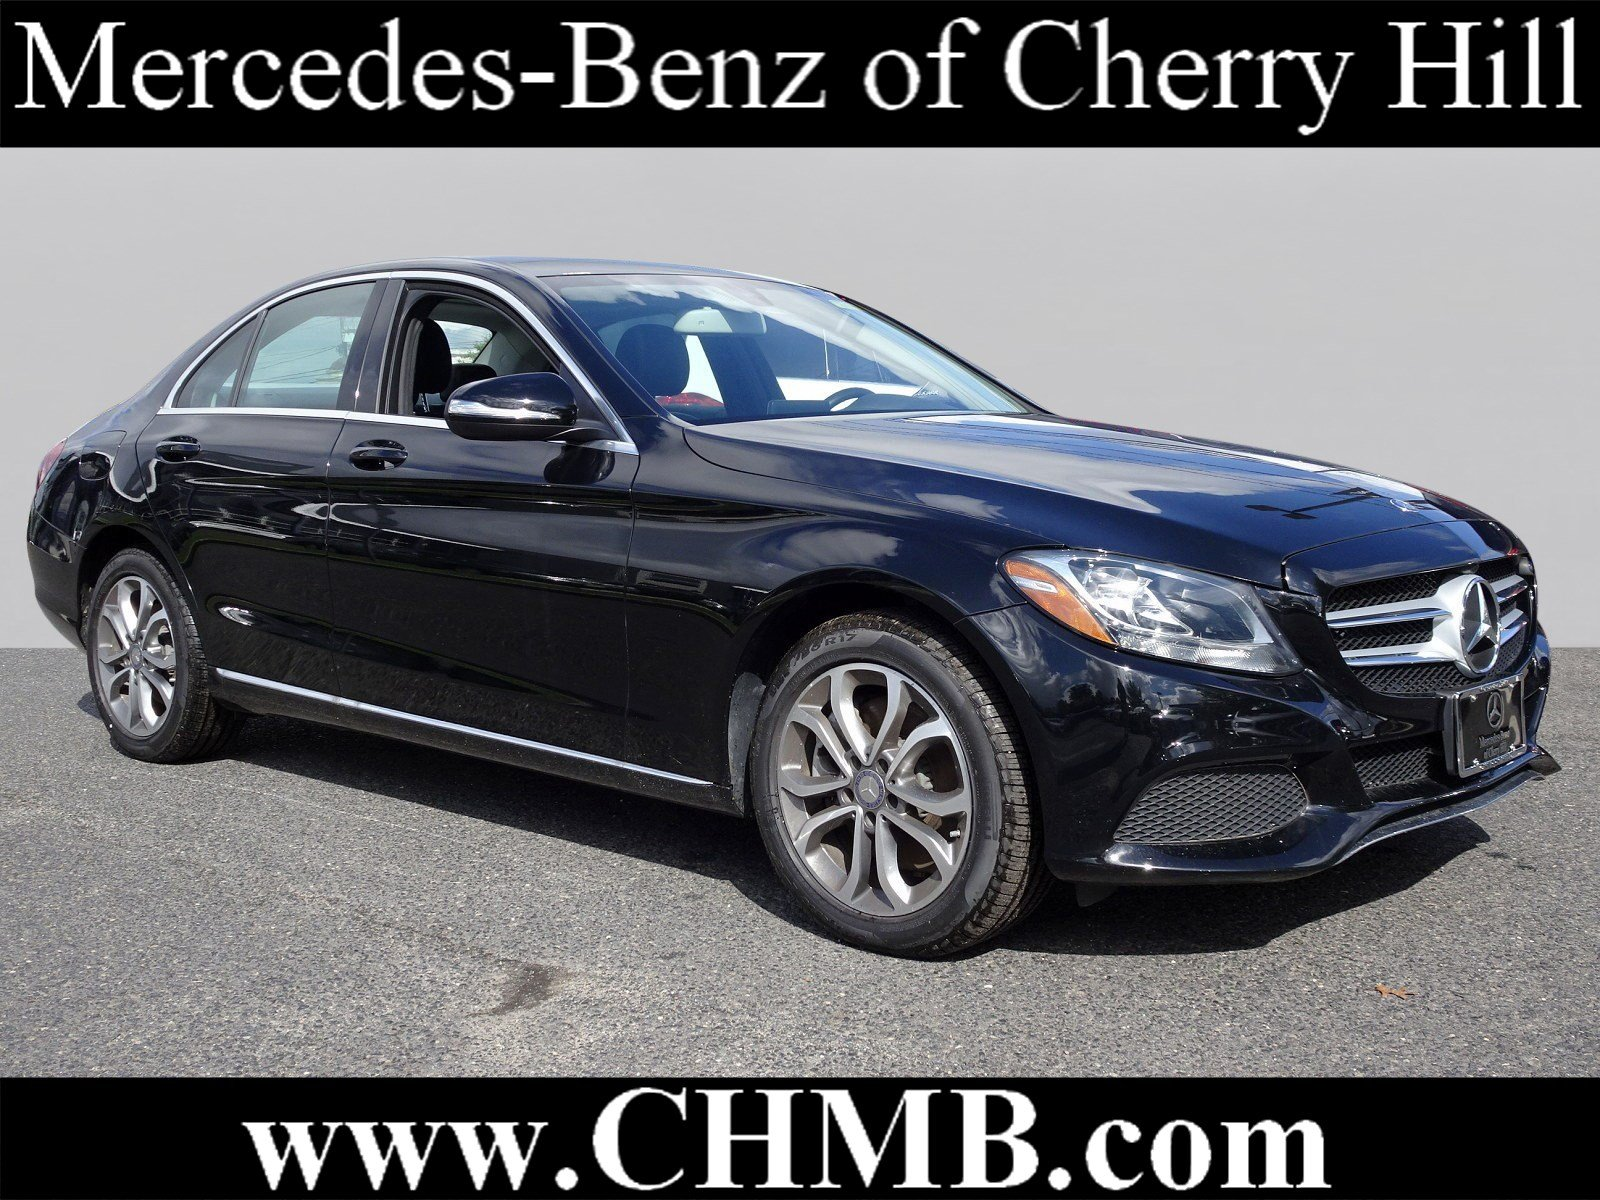 Pre Owned 2015 Mercedes Benz C Class C 300 SEDAN in Cherry Hill